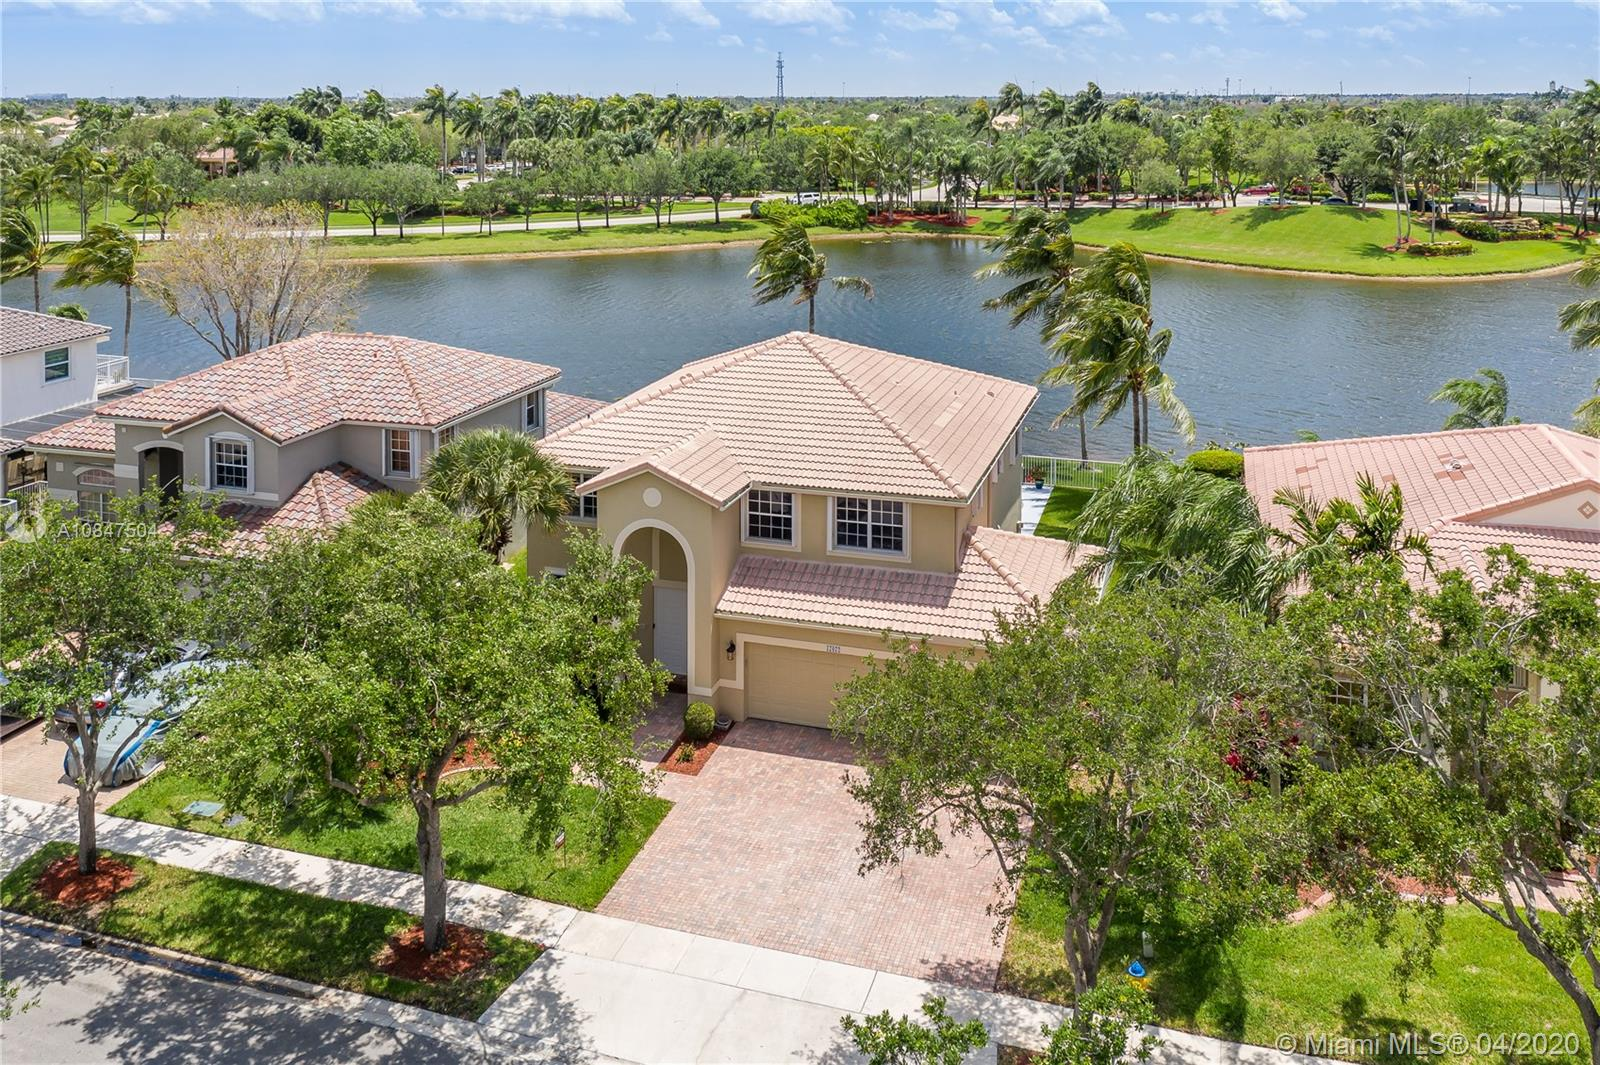 "***CONTEMPORARY LAKEFRONT SAN MARCOS MODEL POOL HOME ***ENCLAVE at PEMBROKE ISLES** Featuring: Remodeled Open Kitchen, Granite Countertops, SS Appliances, Serving Bar, Pantry, Spacious 2nd FL Master Suite w/Sitting/Guest Room ***RENOVATED BATHS*** Dual Walk-in California Closets, Custom Vanities, Elegant Free-Standing Soaking Tub, Frameless Glass Shower Enclosure, Modern Lighting, Newer A/C, Expansive Covered Patio & Balcony ***REFRESHING POOL***WIDE LAKE VIEWS*** The Perfect Family Home…. Residents Enjoy: Fitness Center, Aerobics, Sauna, Tennis, Racquetball, Basketball, Soccer, Volleyball, Swimming Pools, Jacuzzis, Fishing Piers, Walking/Biking Trails, Covered Picnic Areas & Children's Playgrounds.  HOA Includes: Landscaping, Cable, Internet & Alarm Monitoring.   ""TOP"" Rated Schools."